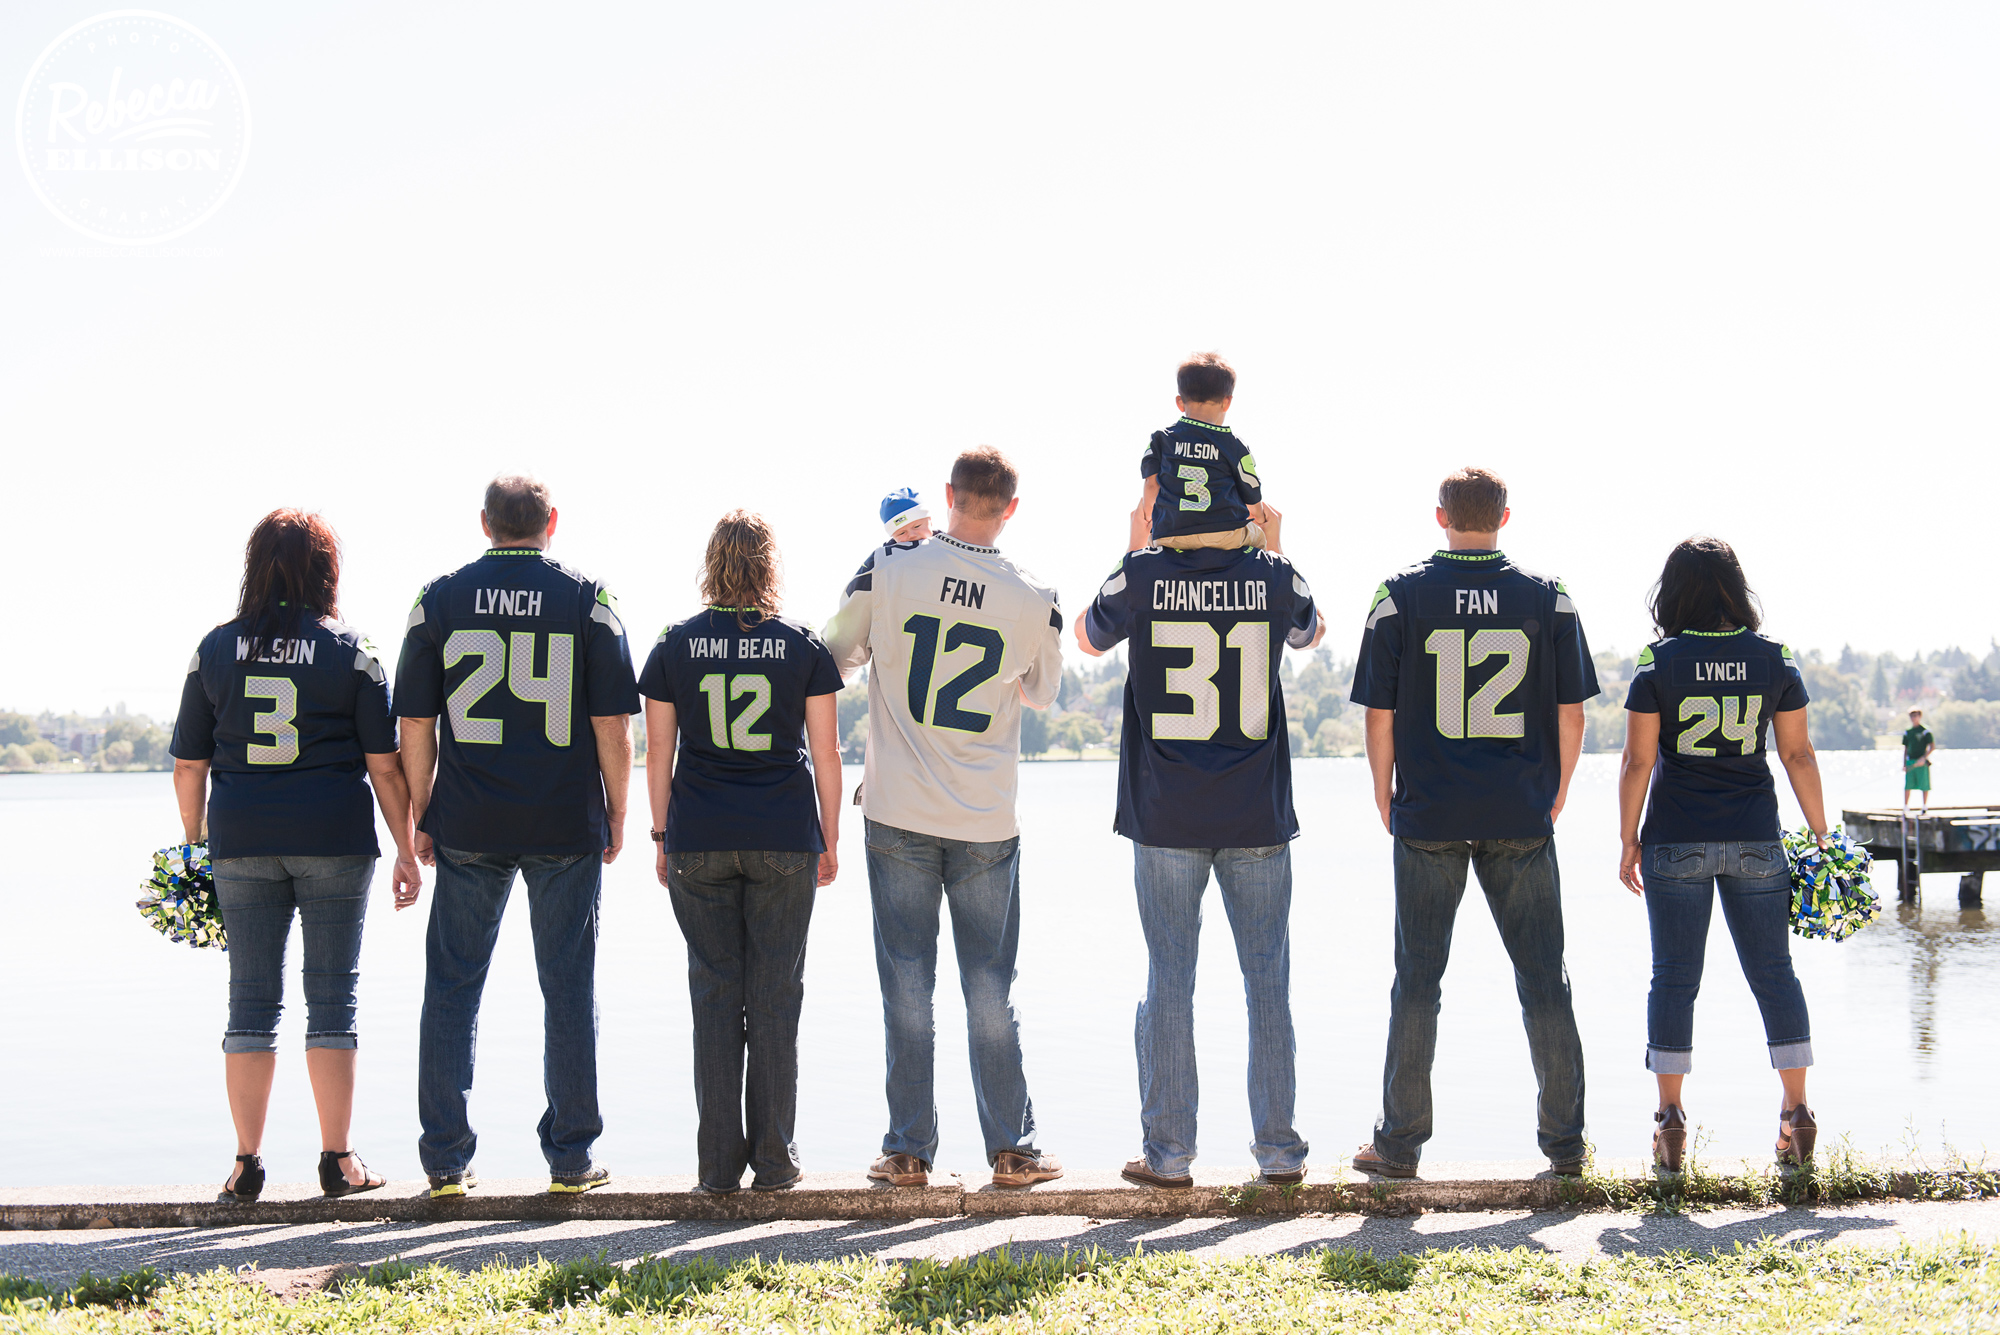 Seahawks jerseys at an extended family portrait session photographed by Seattle family photographer Rebecca Ellison